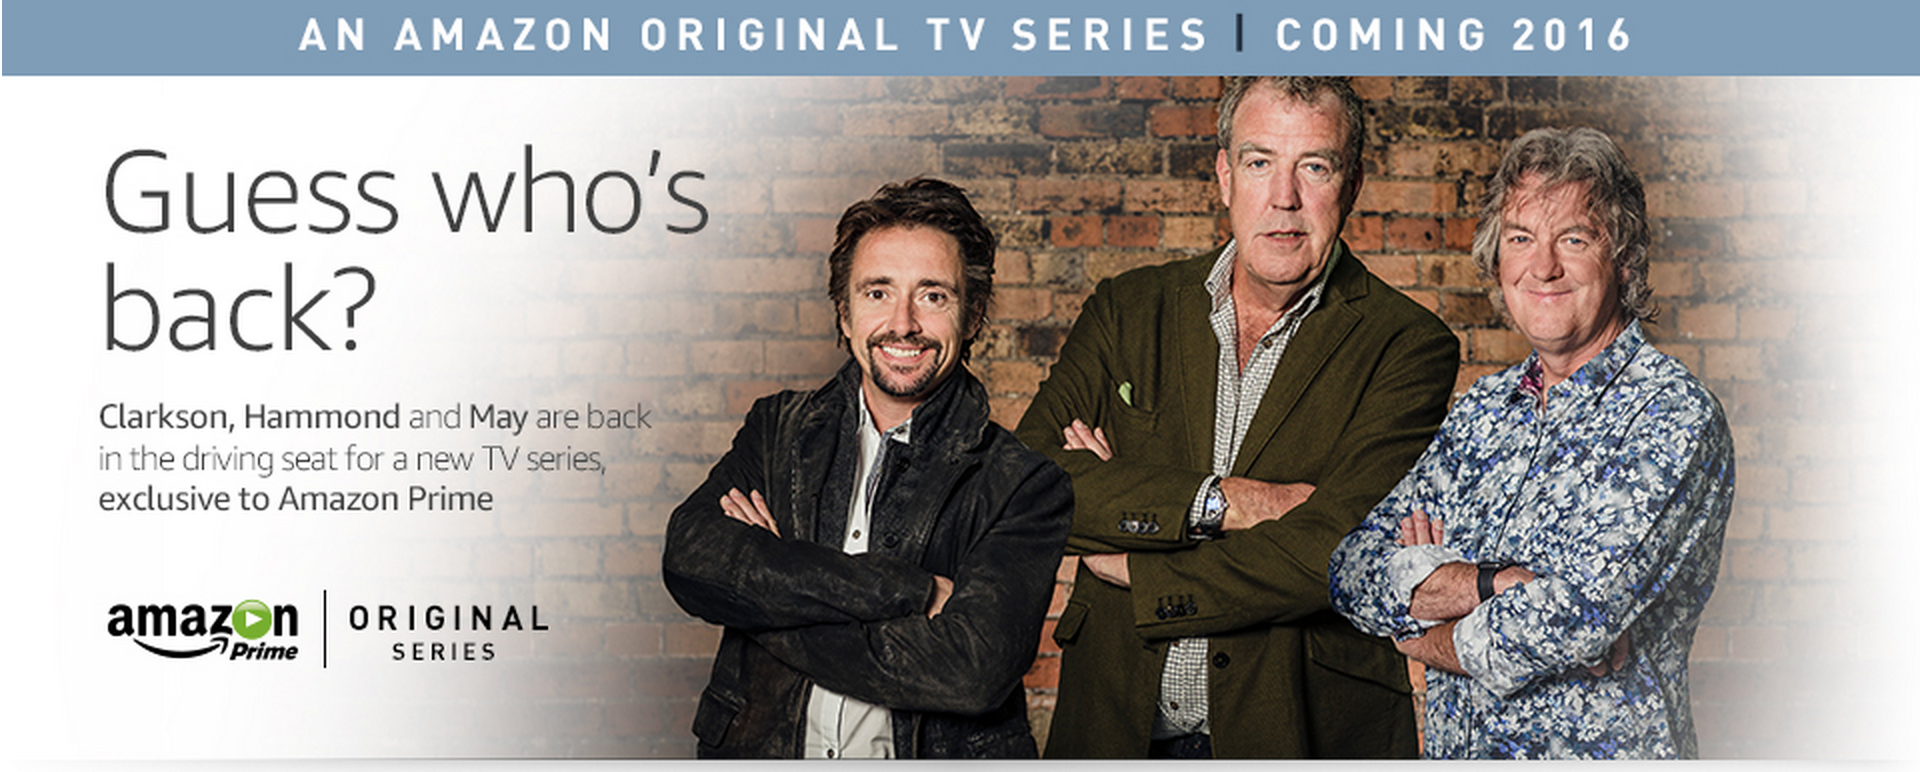 Amazon Signs Deal With ExTop Gear Presenters - Top gear car show